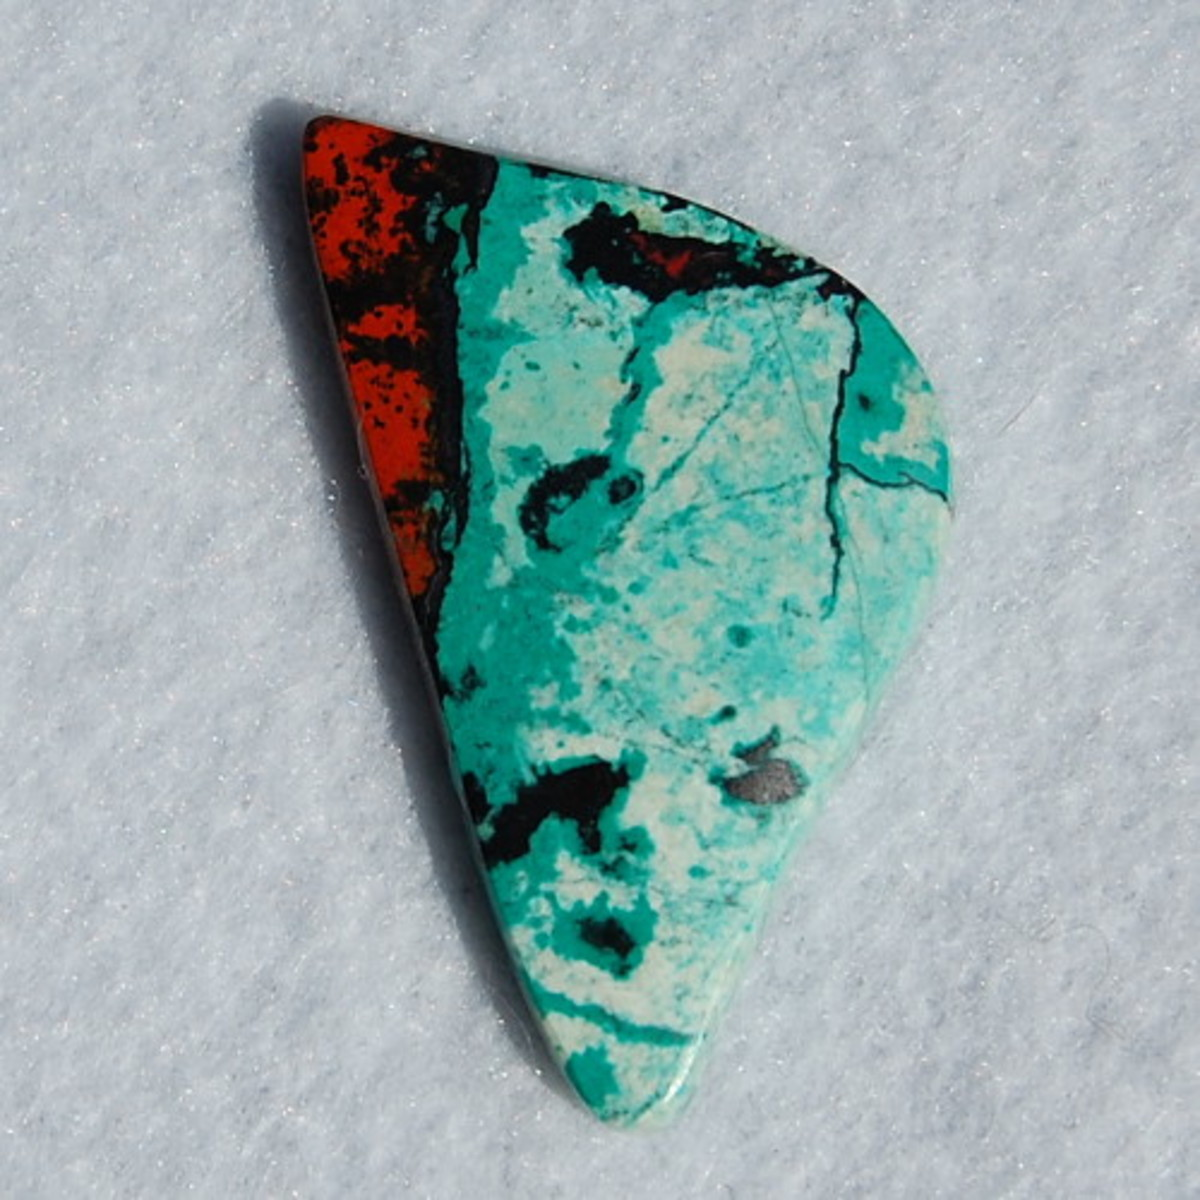 Sonoran Sunrise Chrysocolla cut by Marty Andersen.  This unique variety of gemstone gets it's color from Chrysocolla (blue), Cuprite (red) and Tenorite (black).